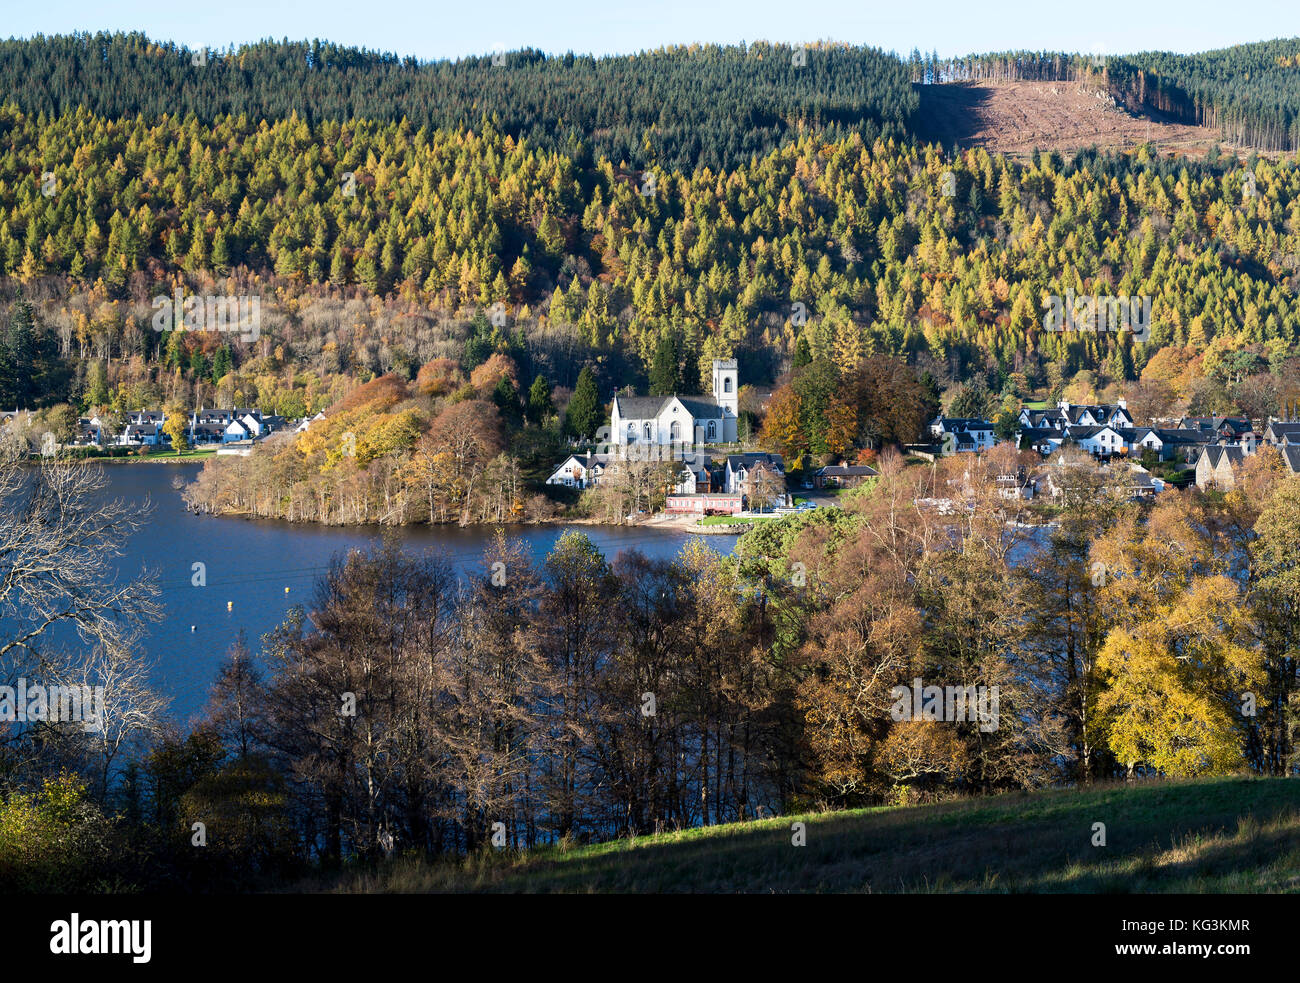 Kenmore Church in Kenmore village at the moth of Loch Tay, Perthshire, Scotland. - Stock Image